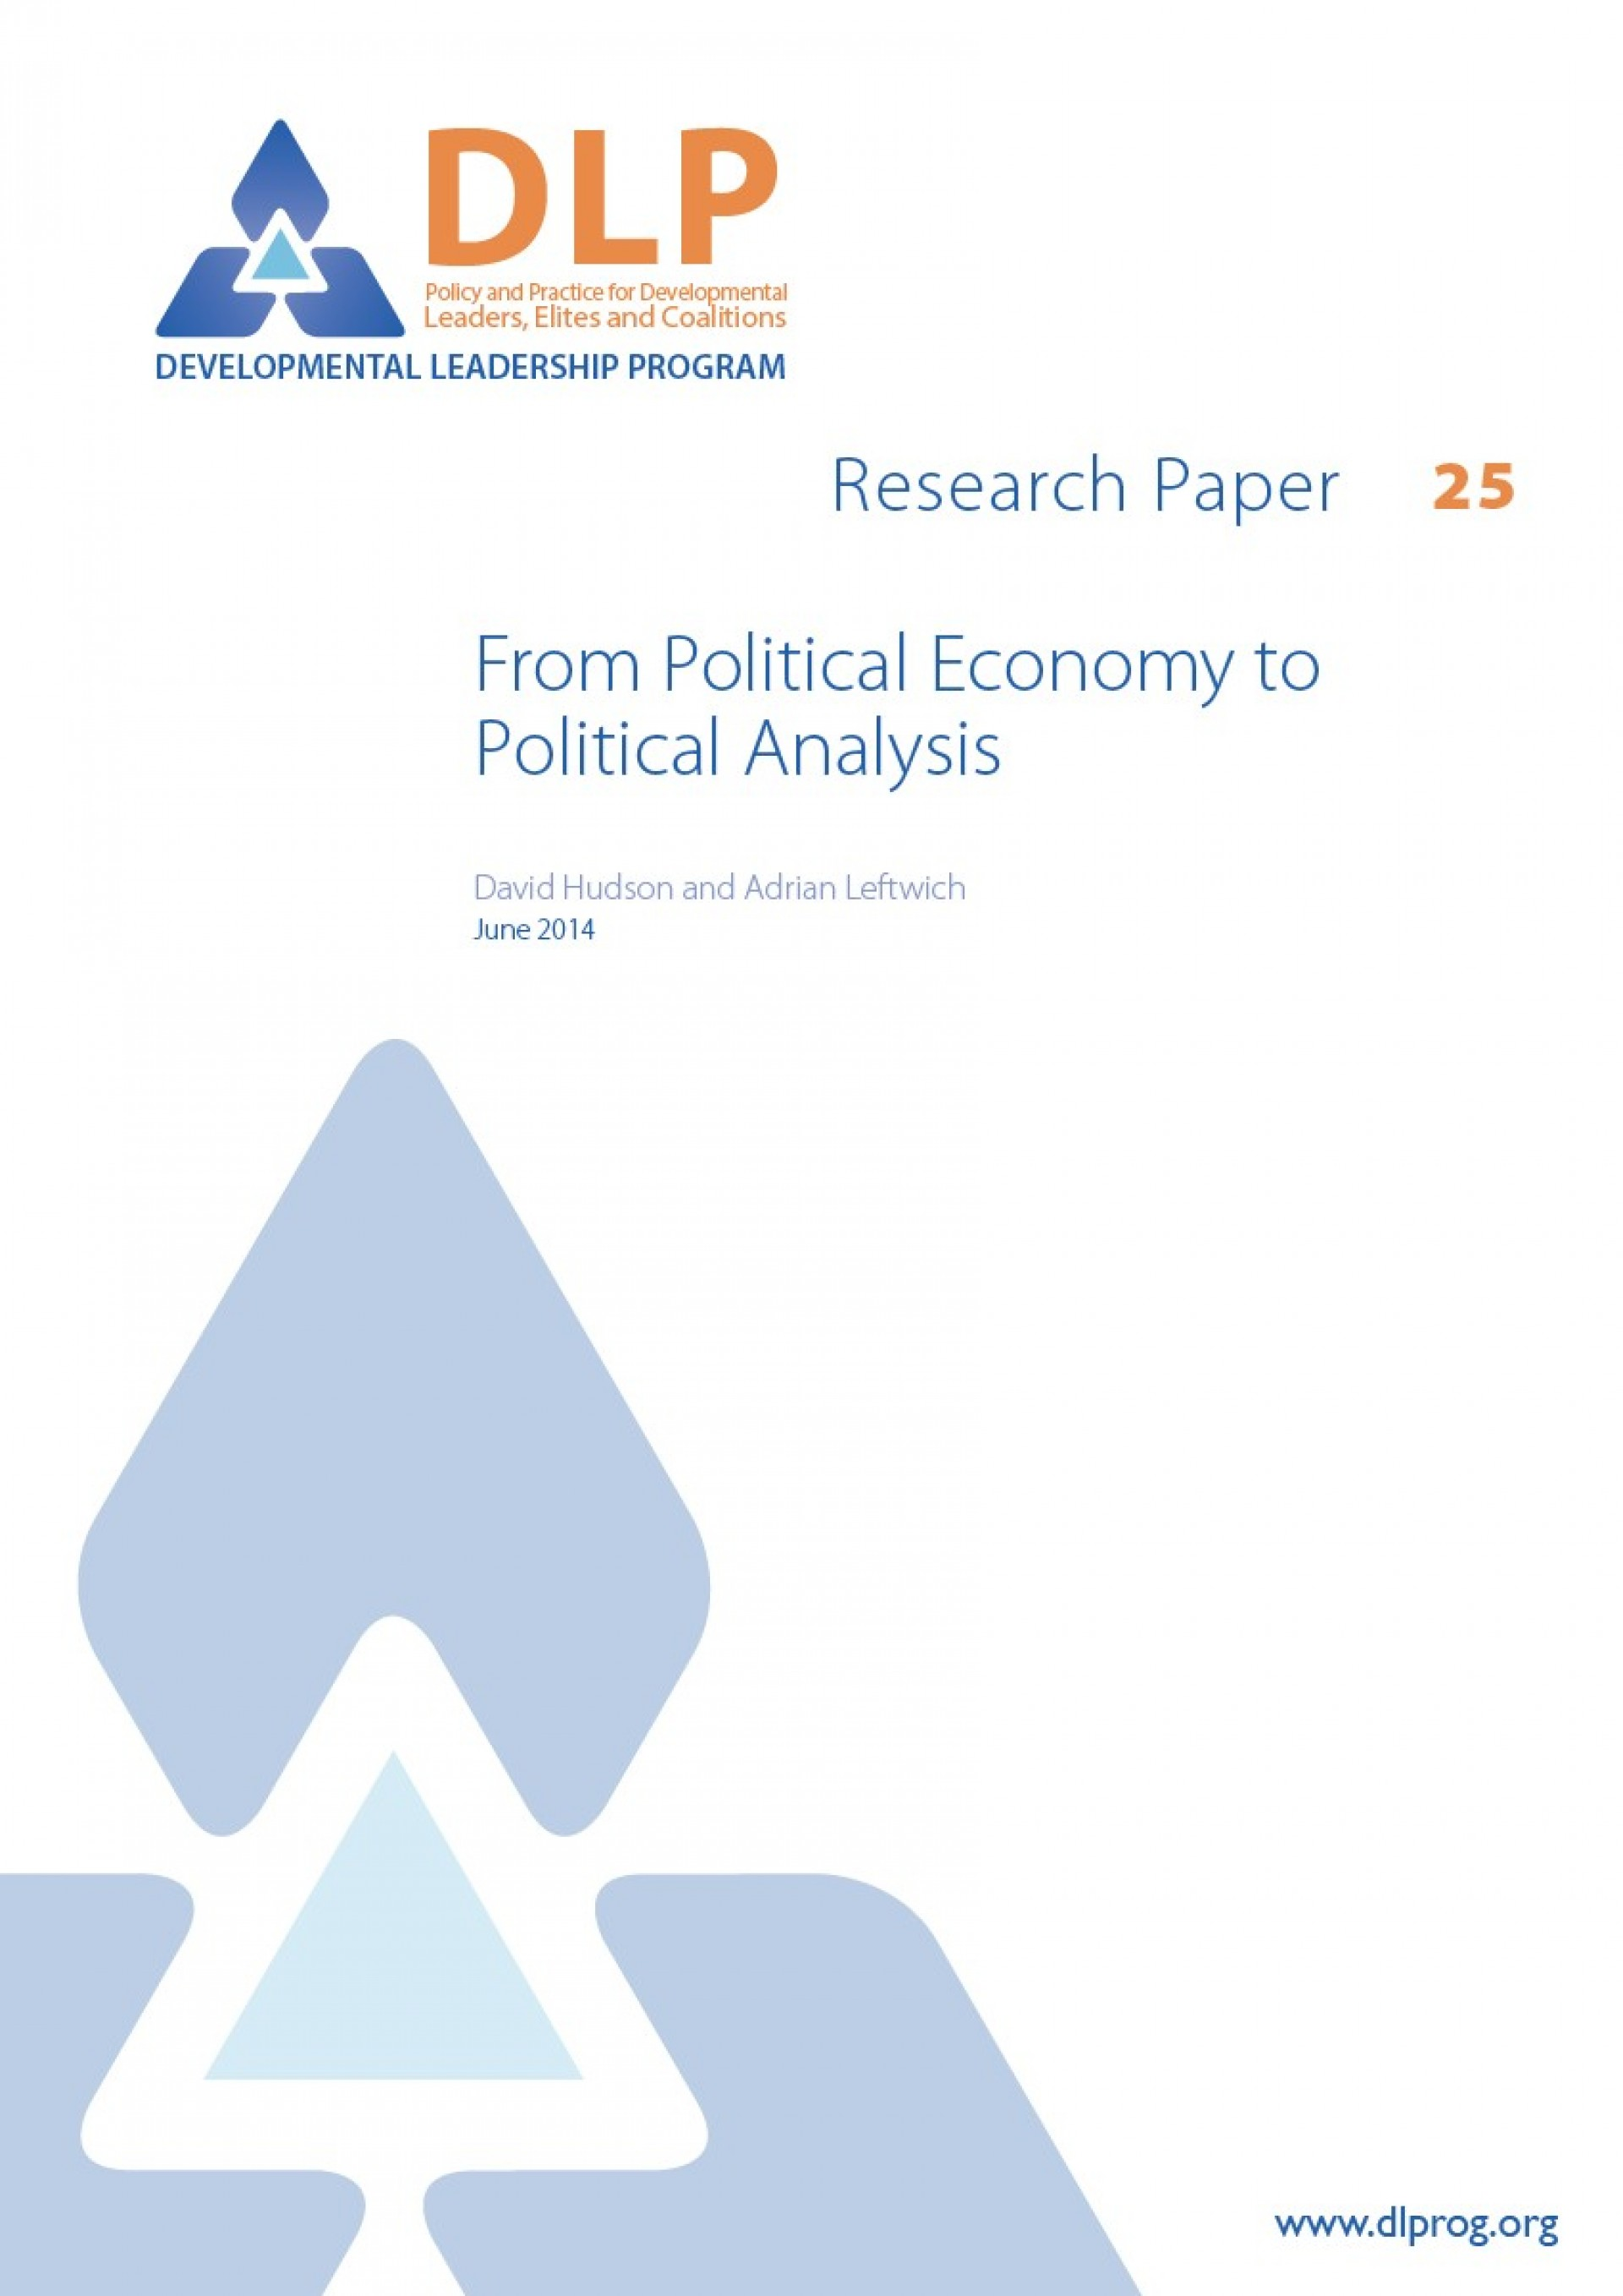 006 Political Economy Research Paper Topics From To Awesome International Global 1920